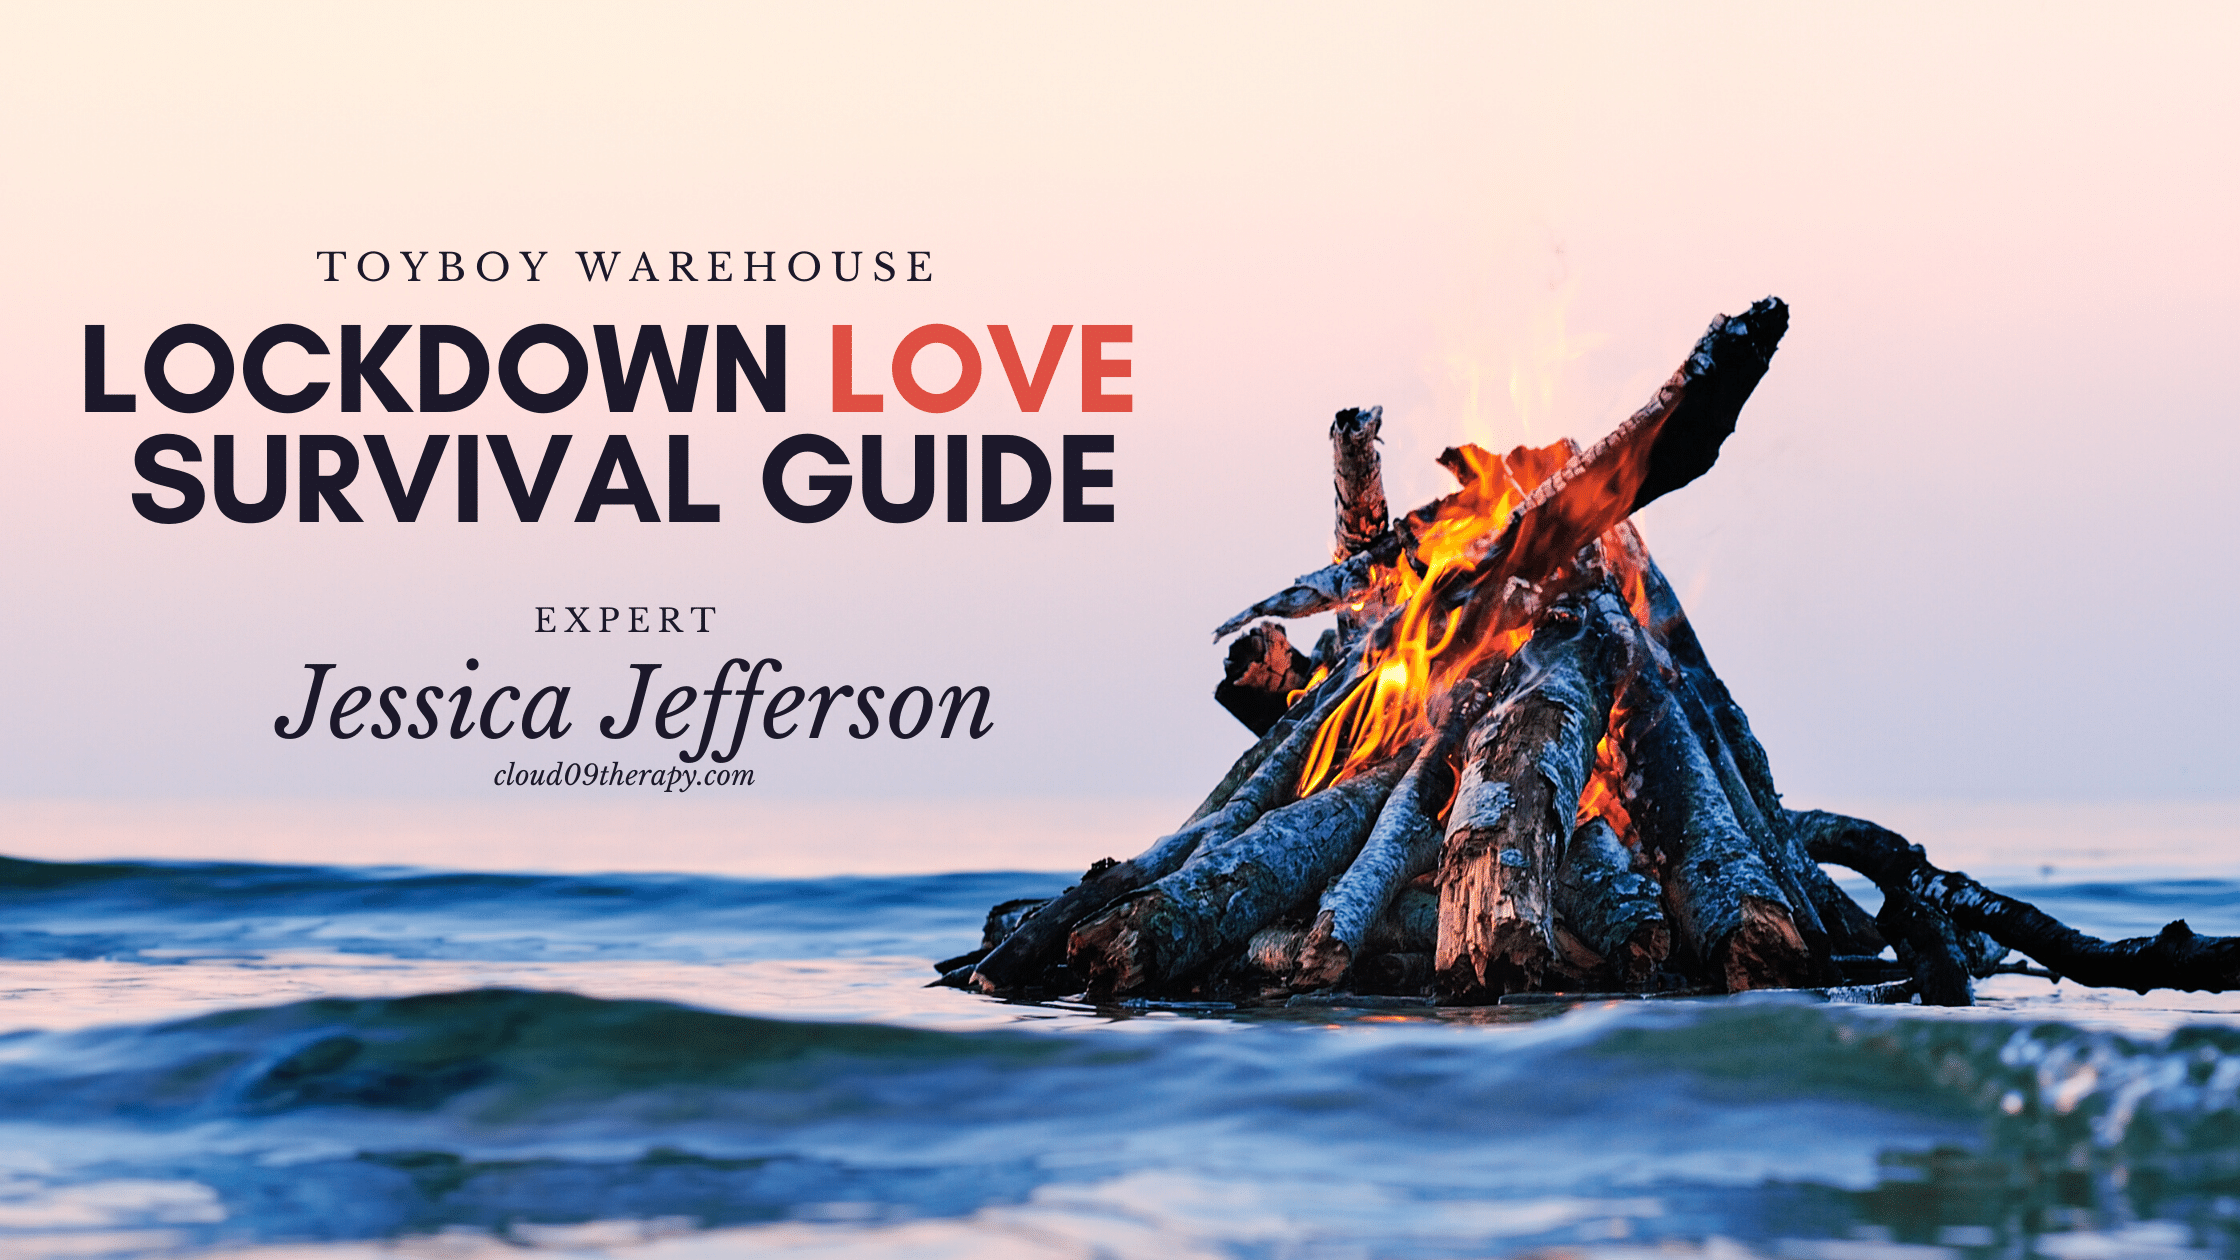 Lockdown Love Survival Guide – Expert: Jessica Jefferson